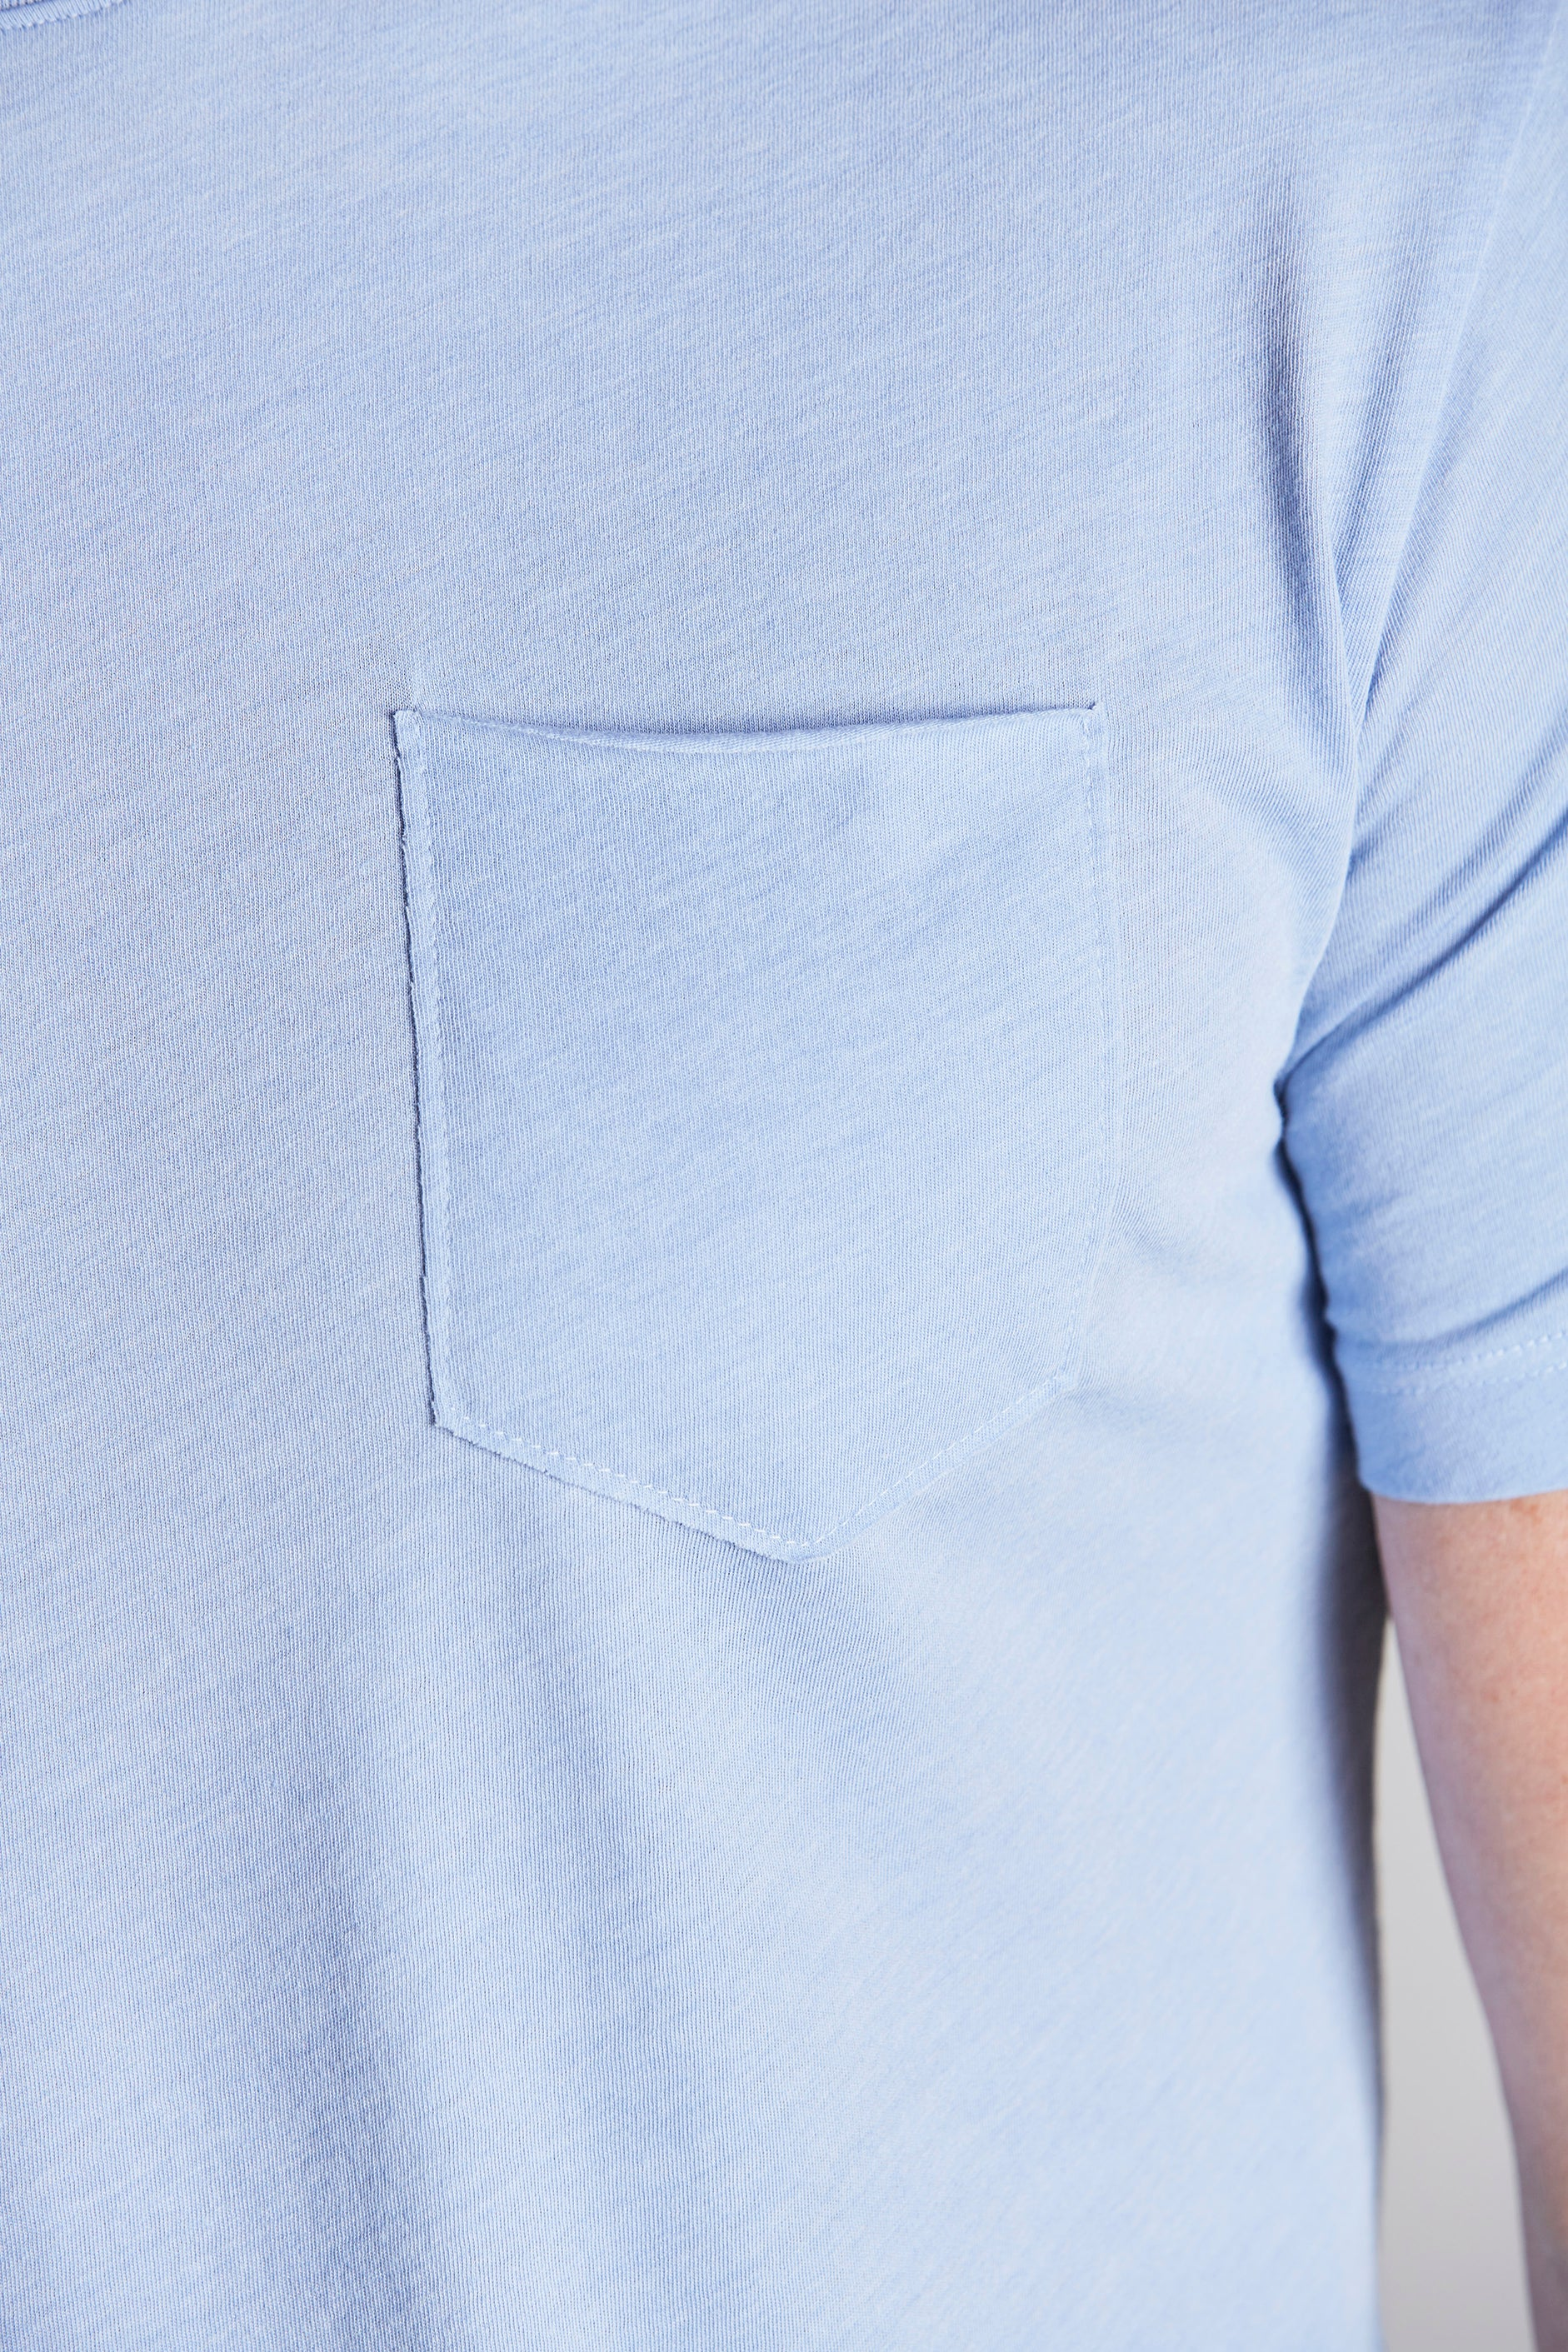 Load image into Gallery viewer, Jack Crew Short Sleeve Tee - Sky Blue